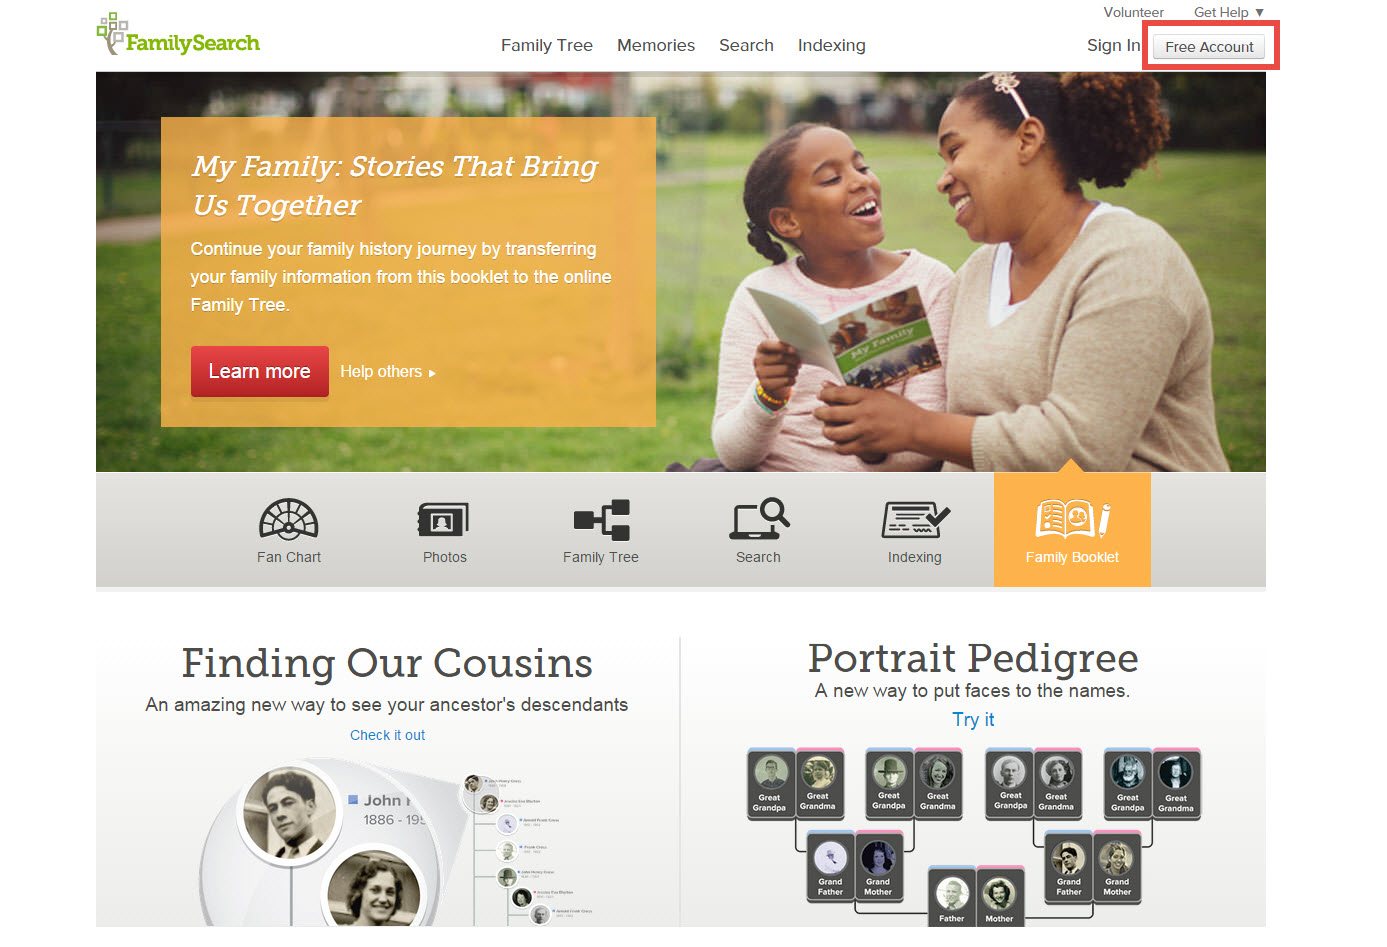 St. George FamilySearch Library Blog/Website - GenealogyNow